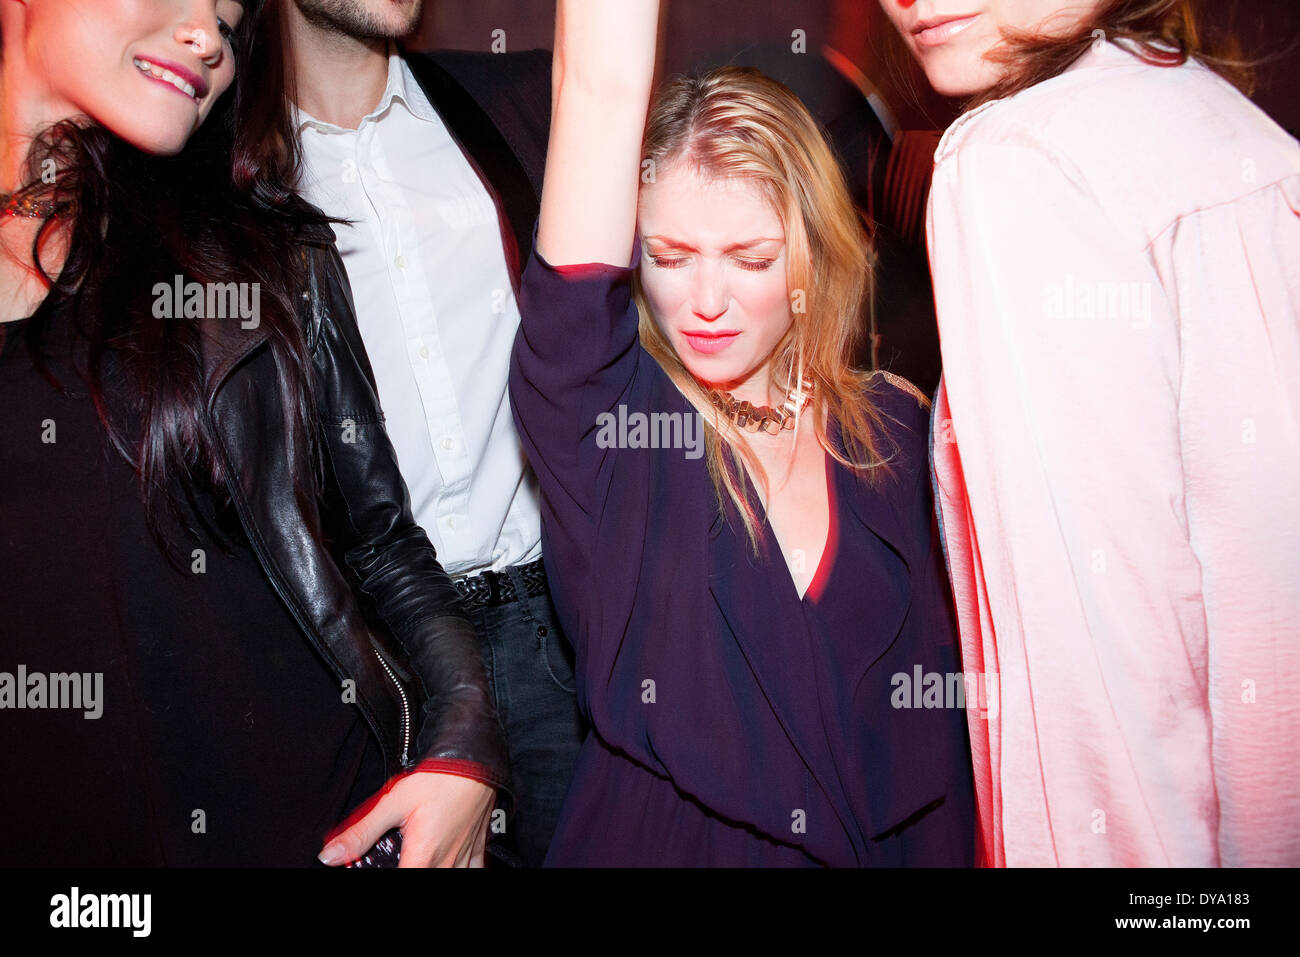 Young woman dancing with friends at night club - Stock Image